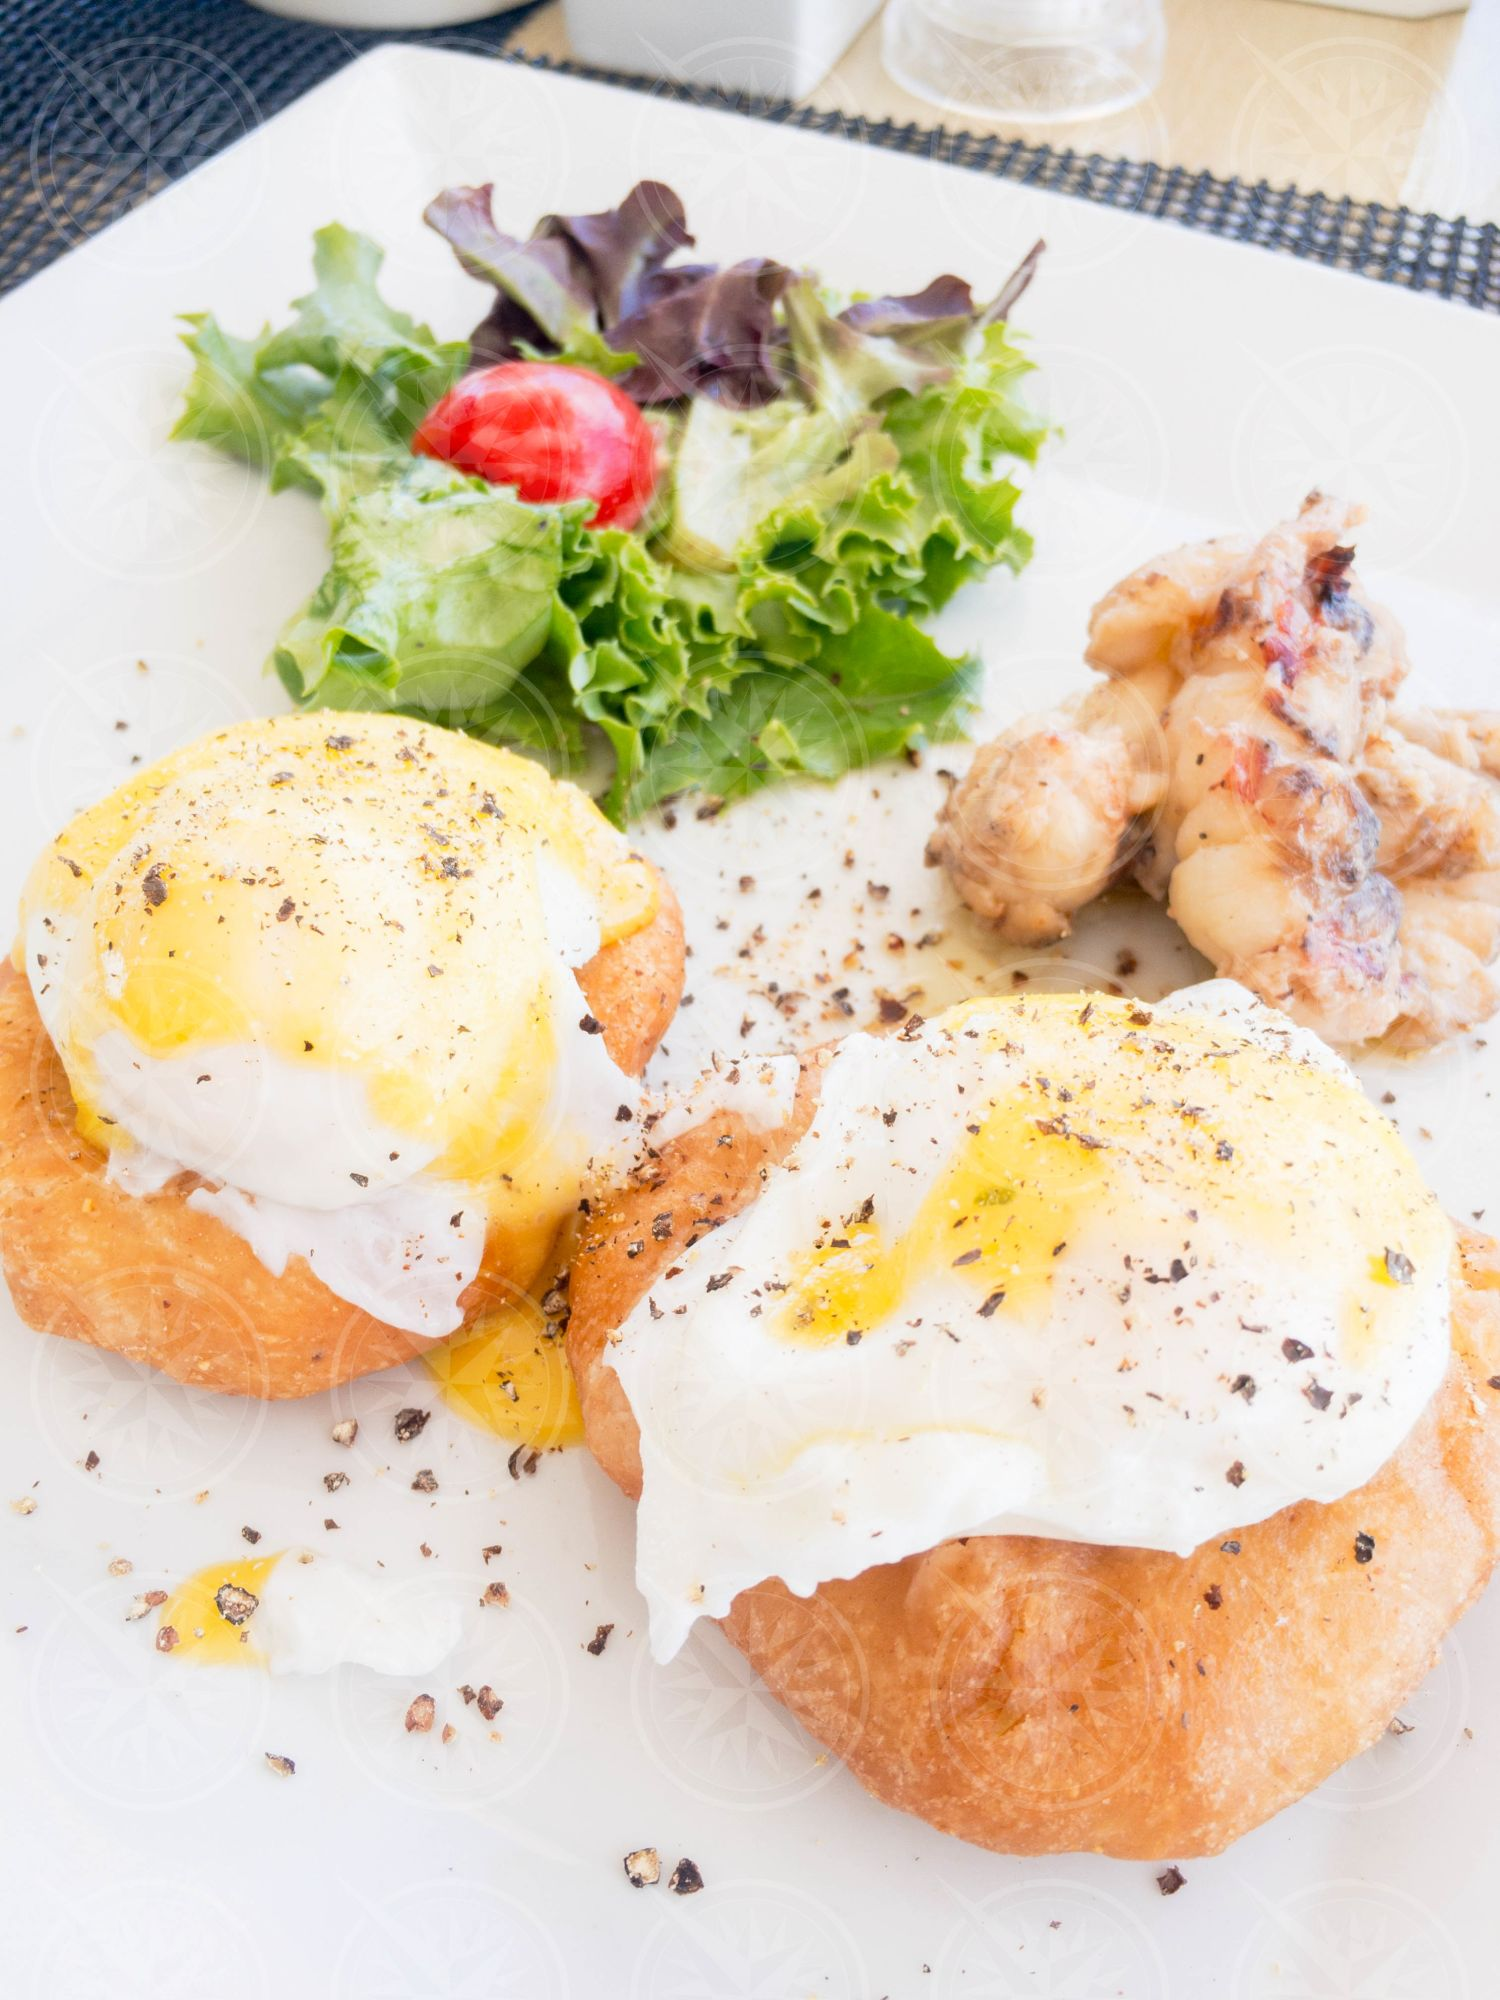 Poached eggs and fry bake